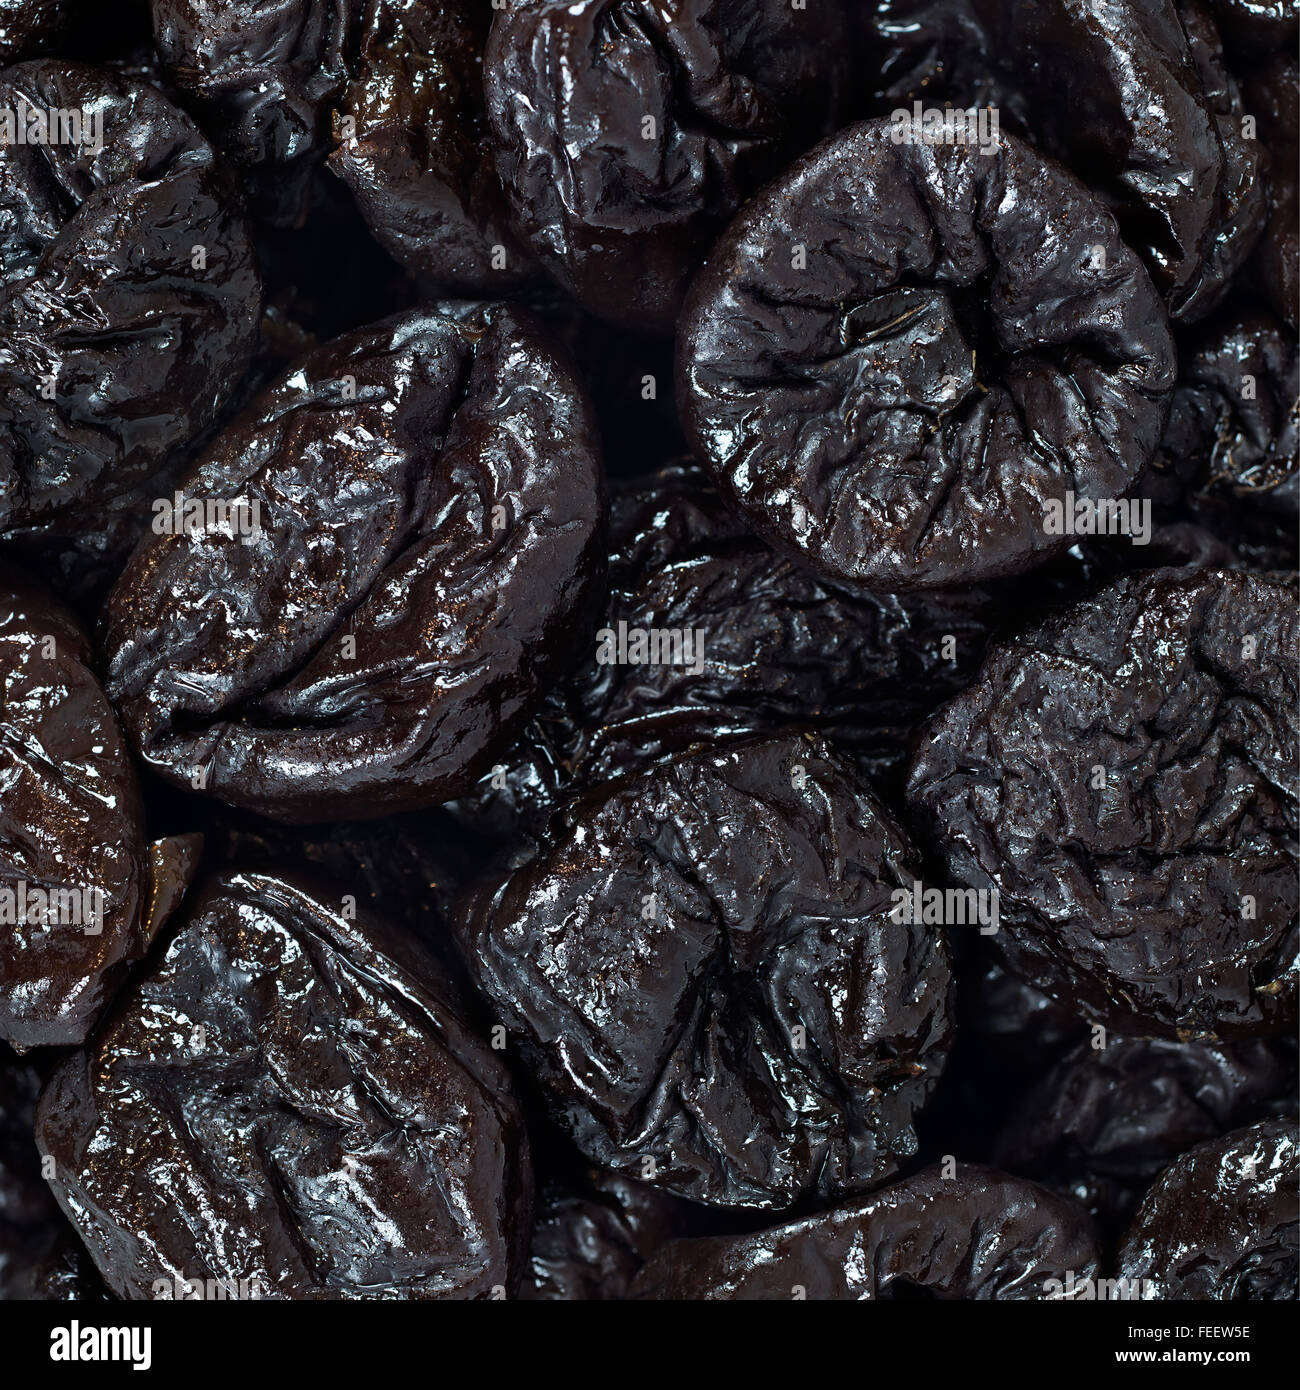 Dried plums or prunes fruit background texture pattern wallpaper - Stock Image